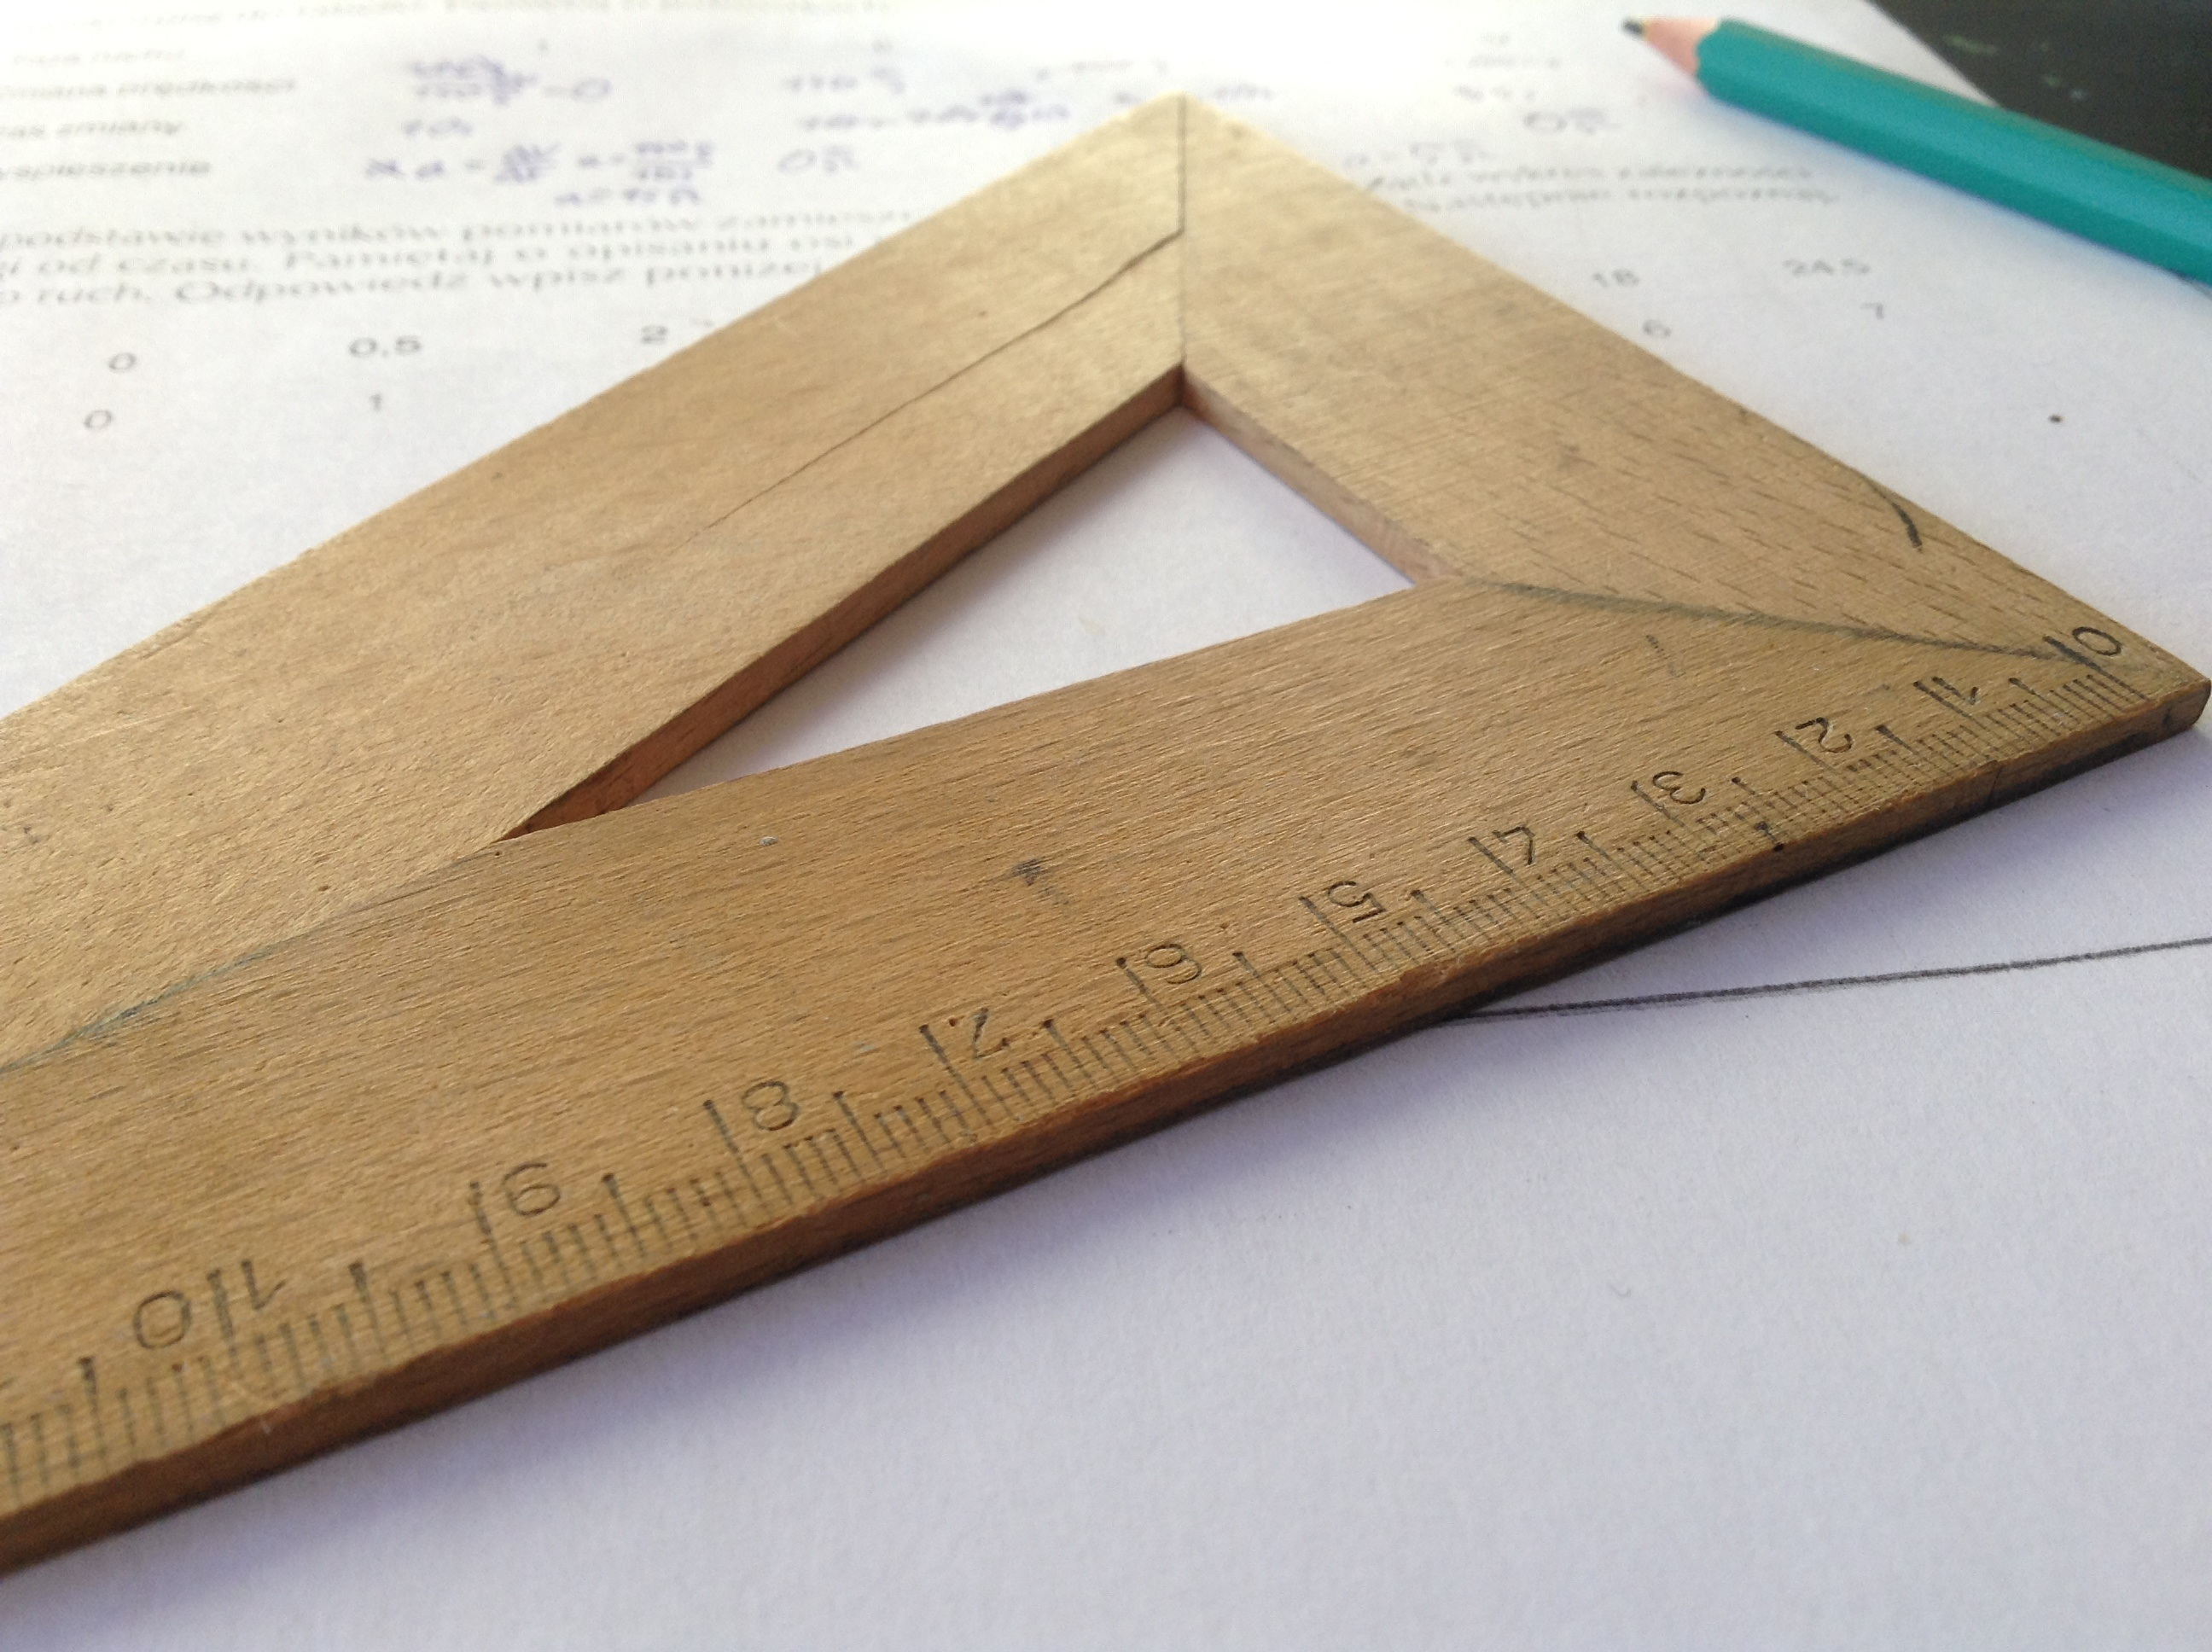 Wooden ruler with math sheet in the background